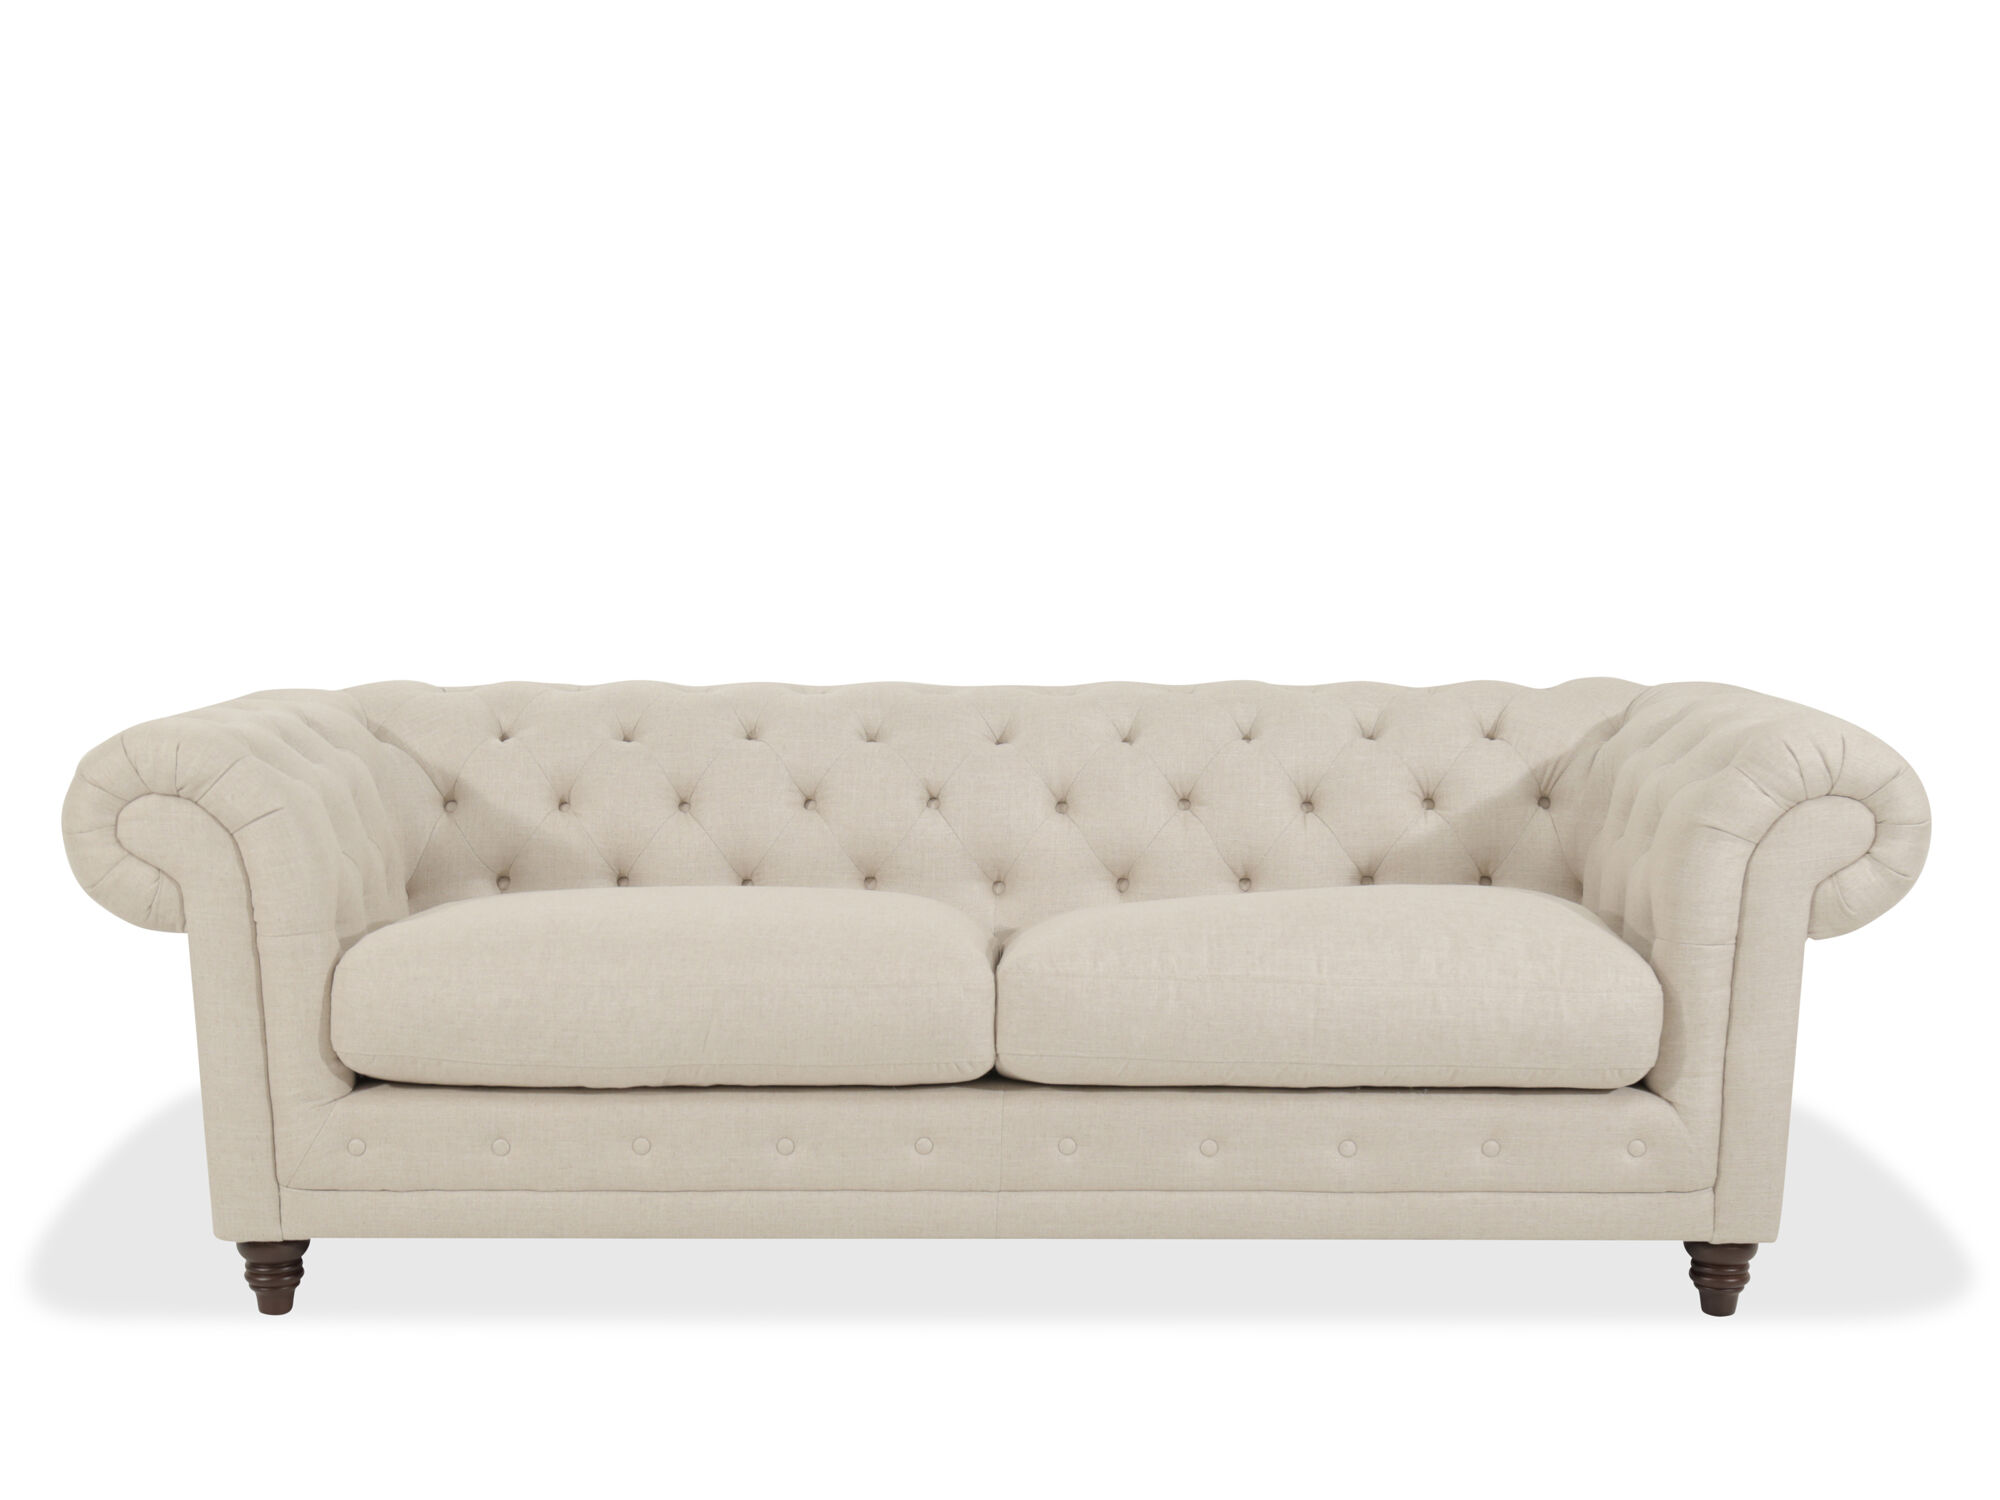 Chesterfield 3+2 Sofa Boulevard Hudson Chesterfield Beige Sofa Mathis Brothers